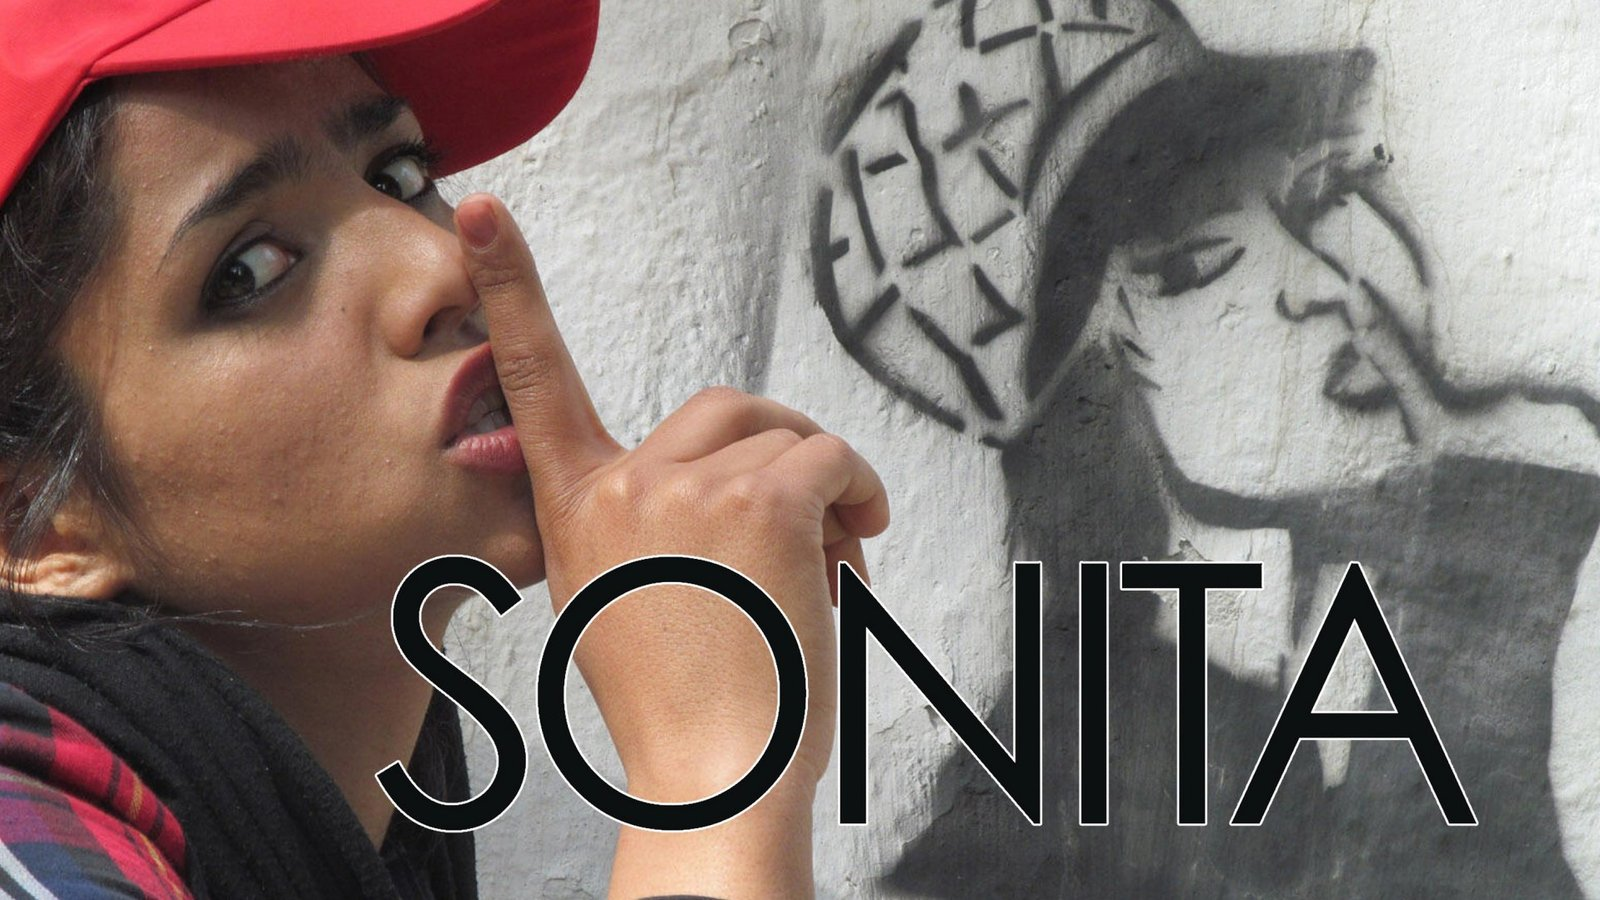 Sonita - Afghan Teen Using Rap to Escape Forced Marriage